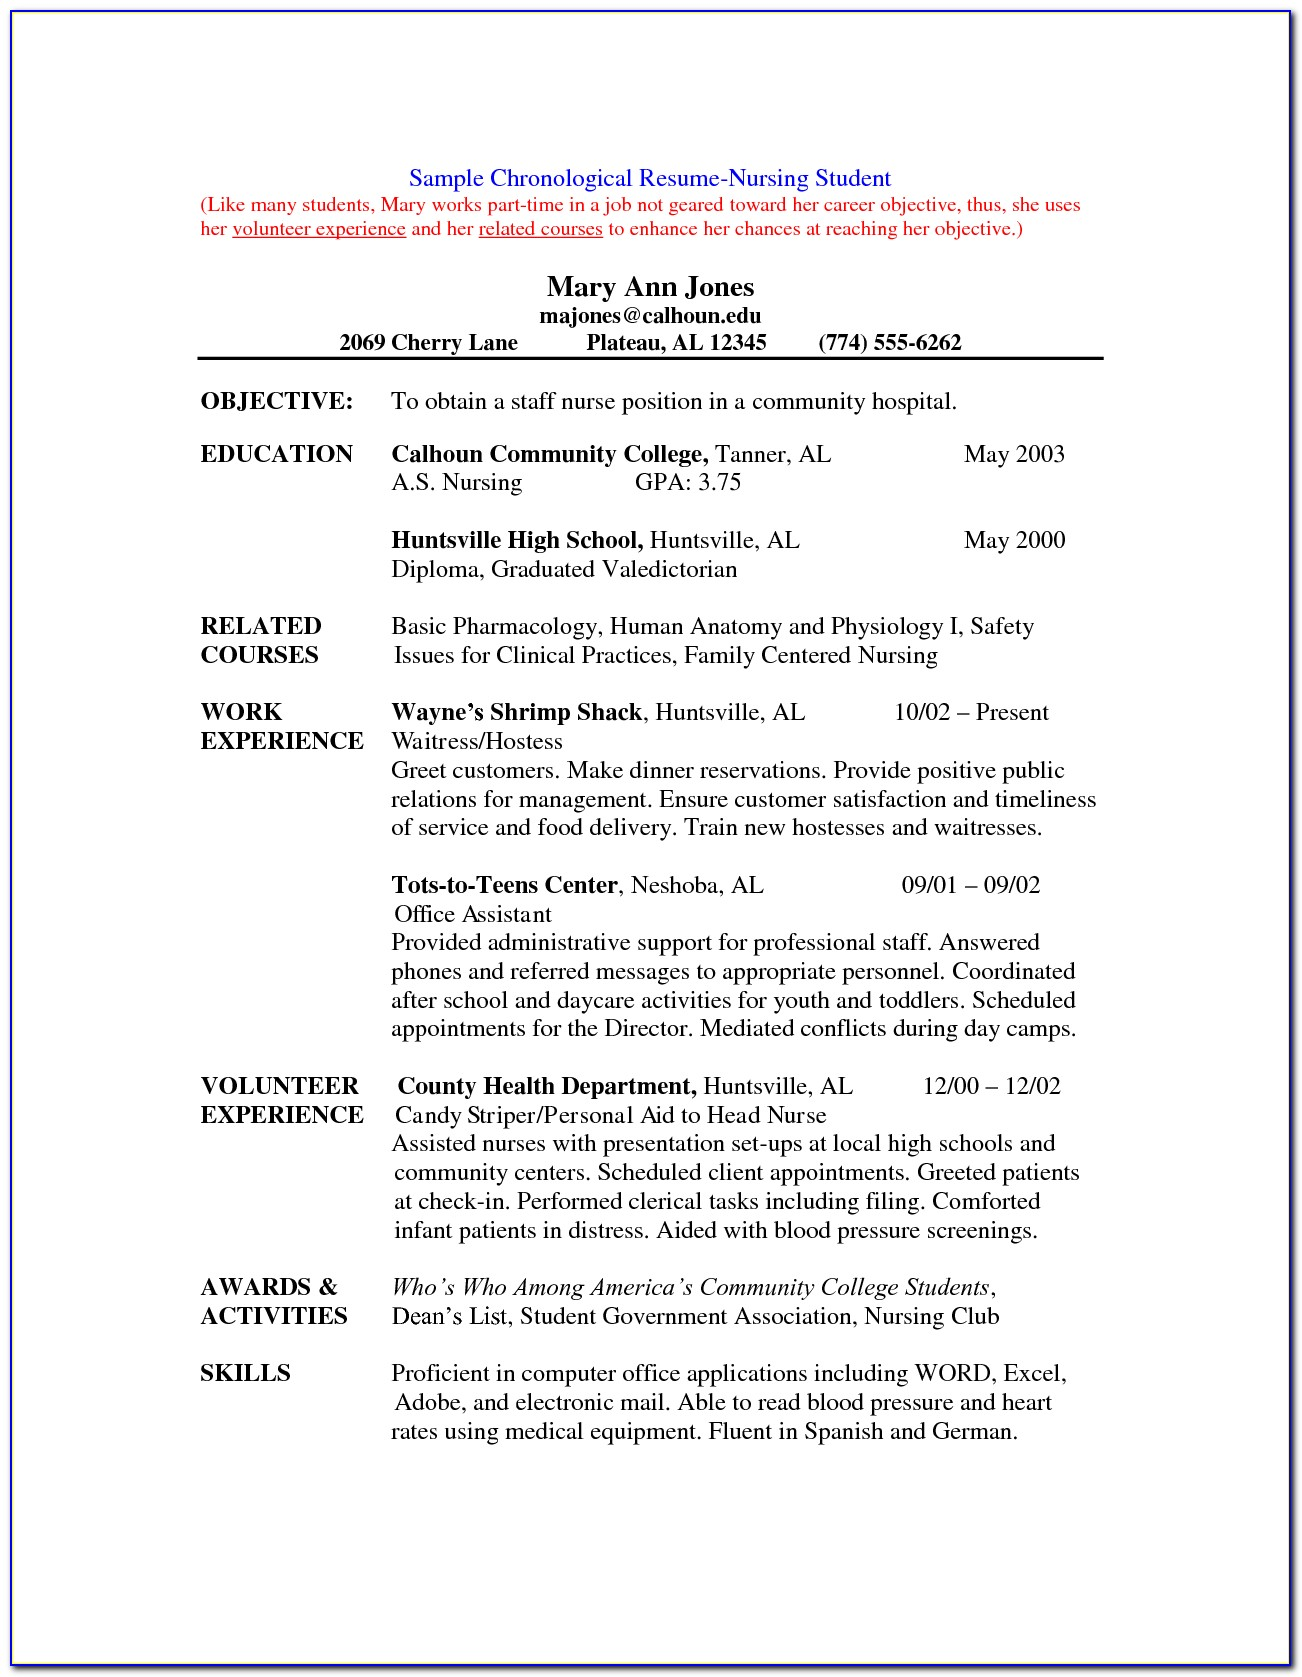 free modern chronological resume template vincegray2014 builder match psg best personal Resume Chronological Resume Builder Free